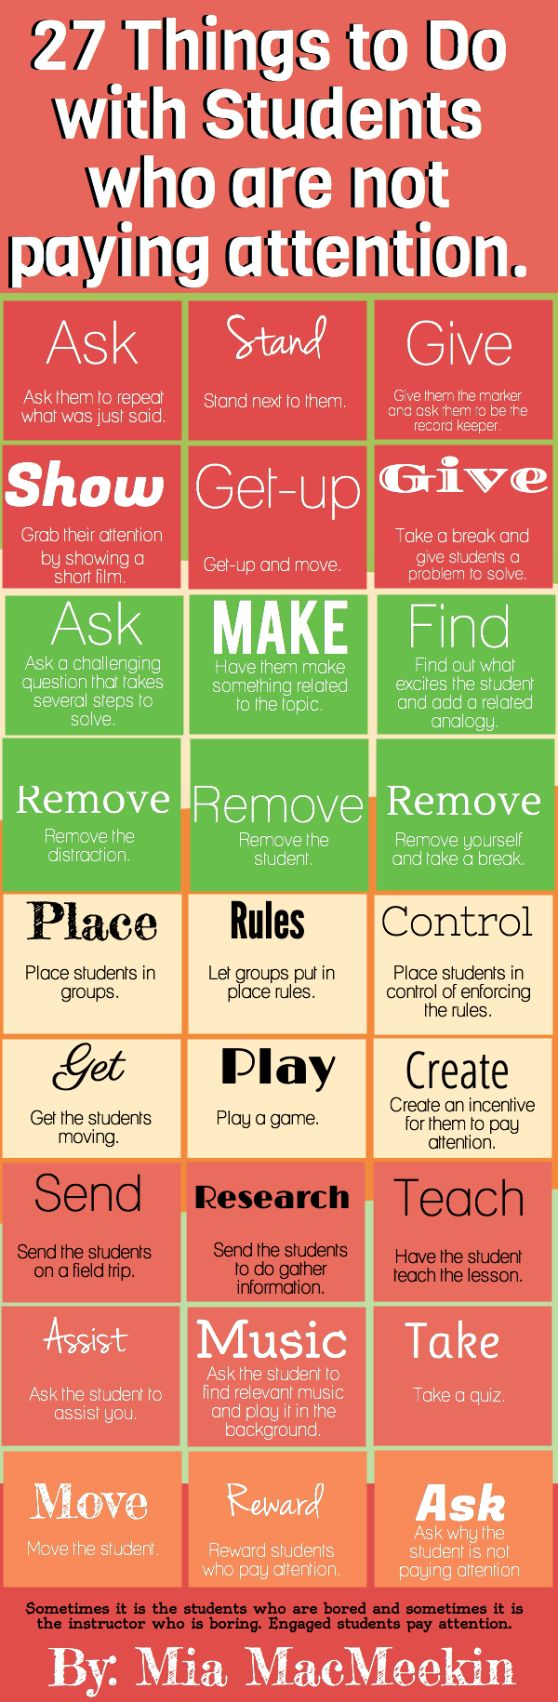 27 things to do with students who are not paying attention.